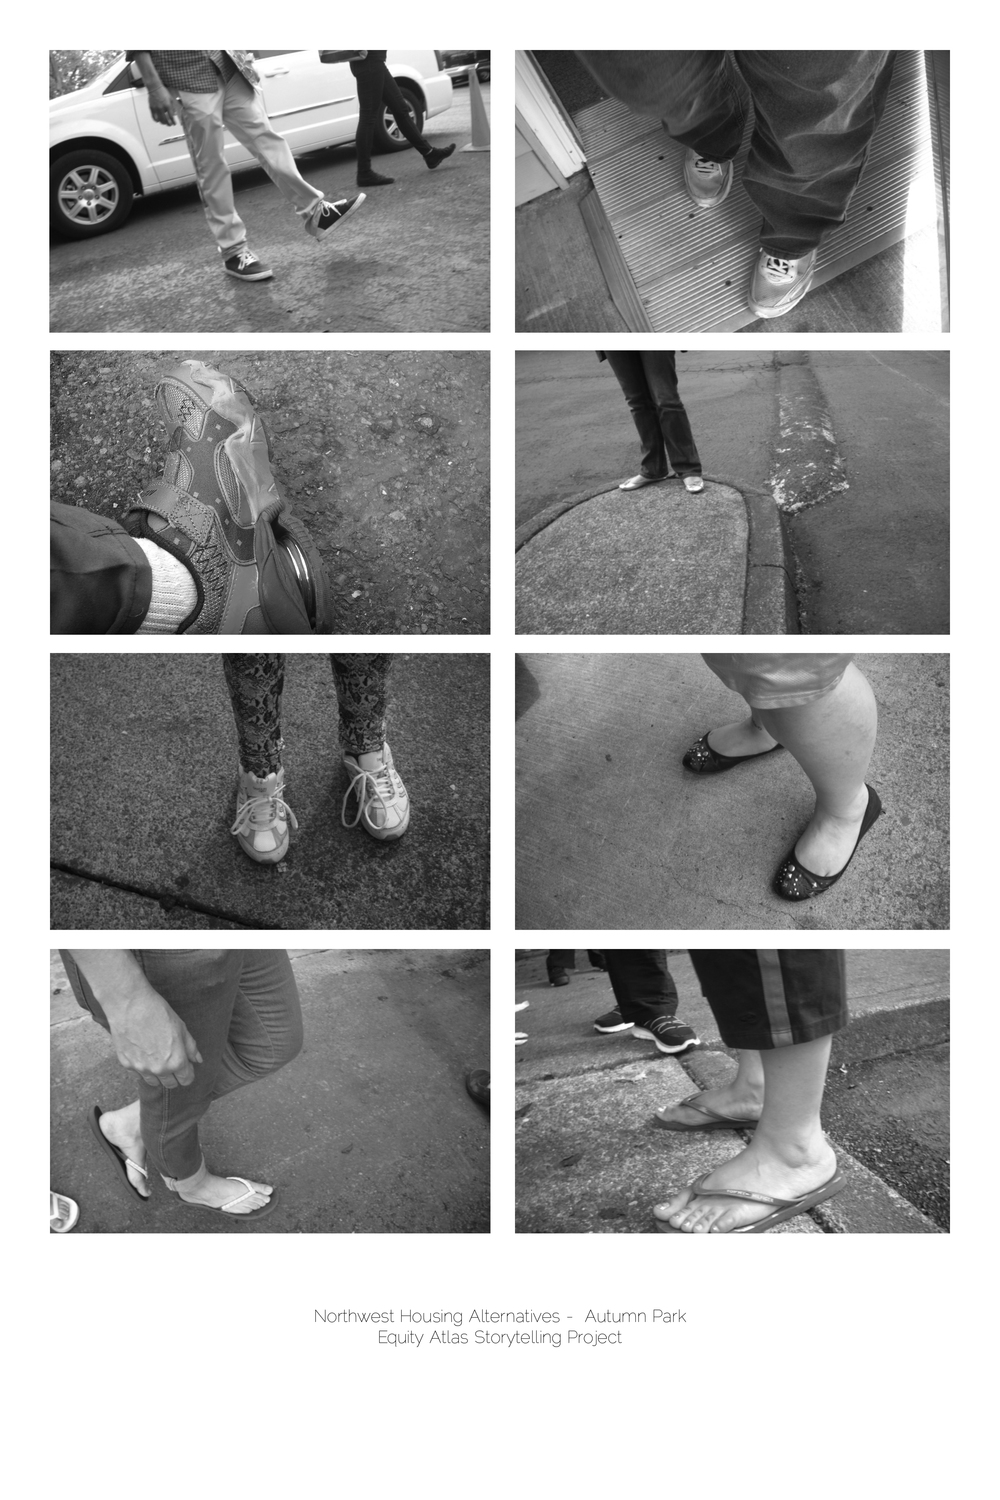 Many of the Autumn Park photos were taken by children. The children were encouraged to use their cameras to capture whatever images of their community sparked their interest and imaginations; two of the children decided to focus on their neighbors' feet.   Equity Atlas Storytelling Project: Northwest Housing Alternatives - Autumn Park